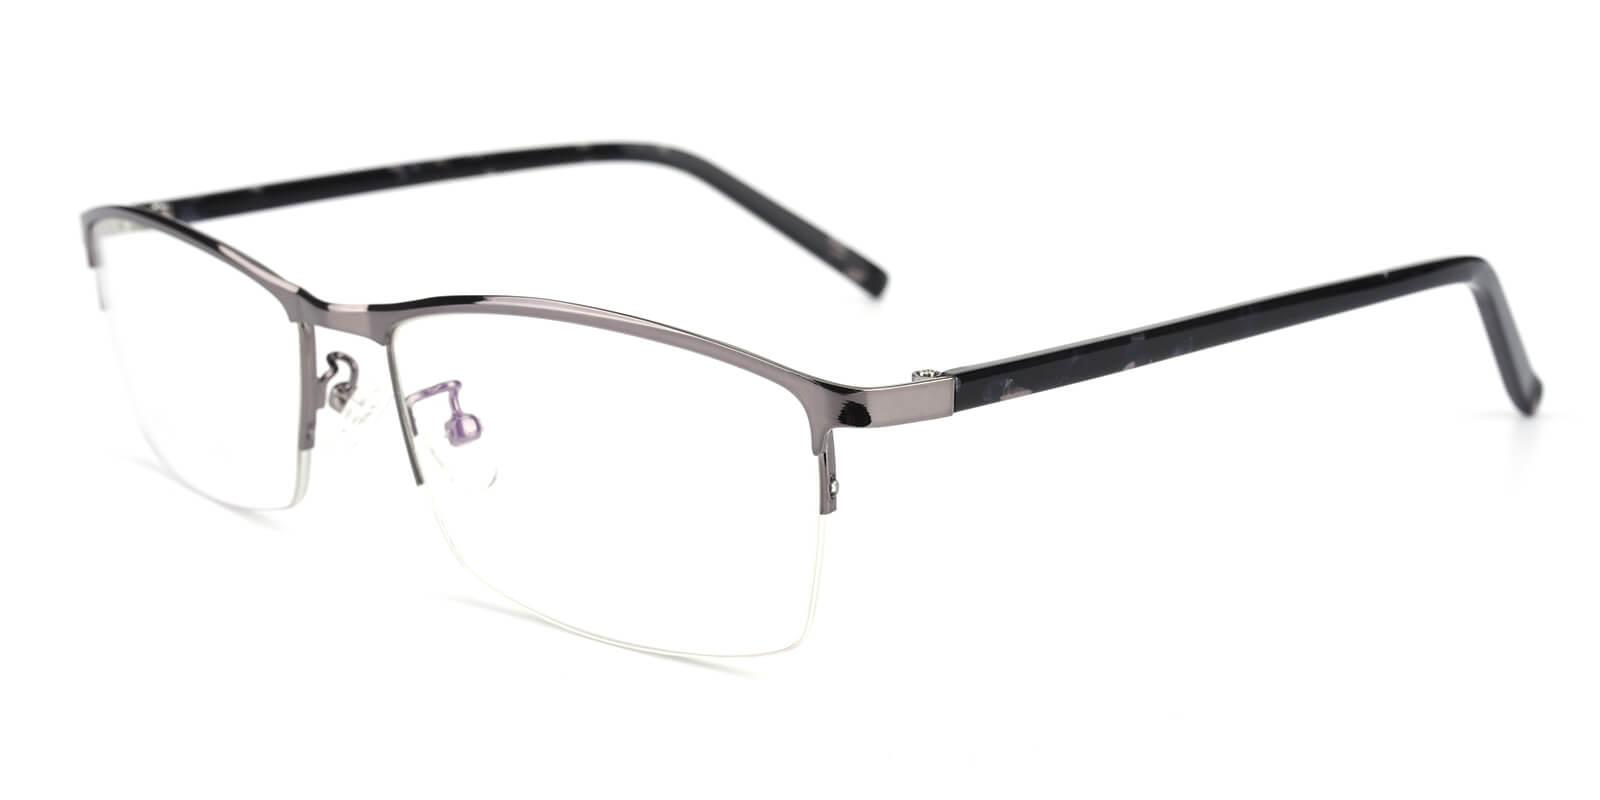 Elegant-Gun-Rectangle-Metal-Eyeglasses-additional1